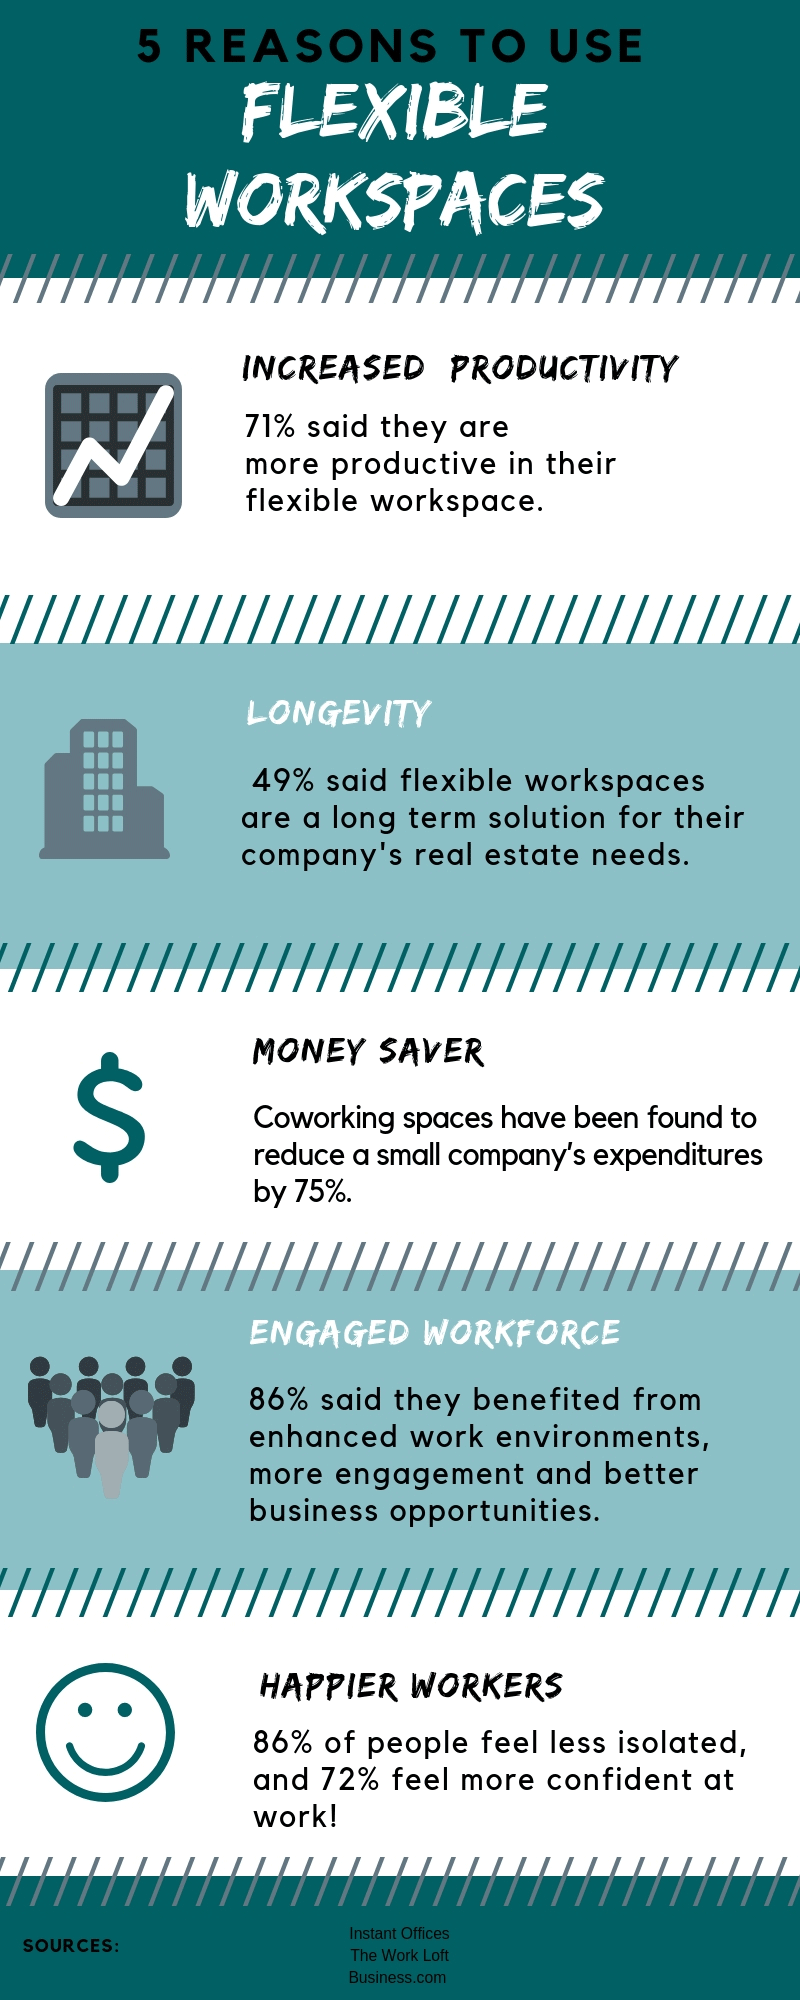 infographic reasons to use flexible workspaces